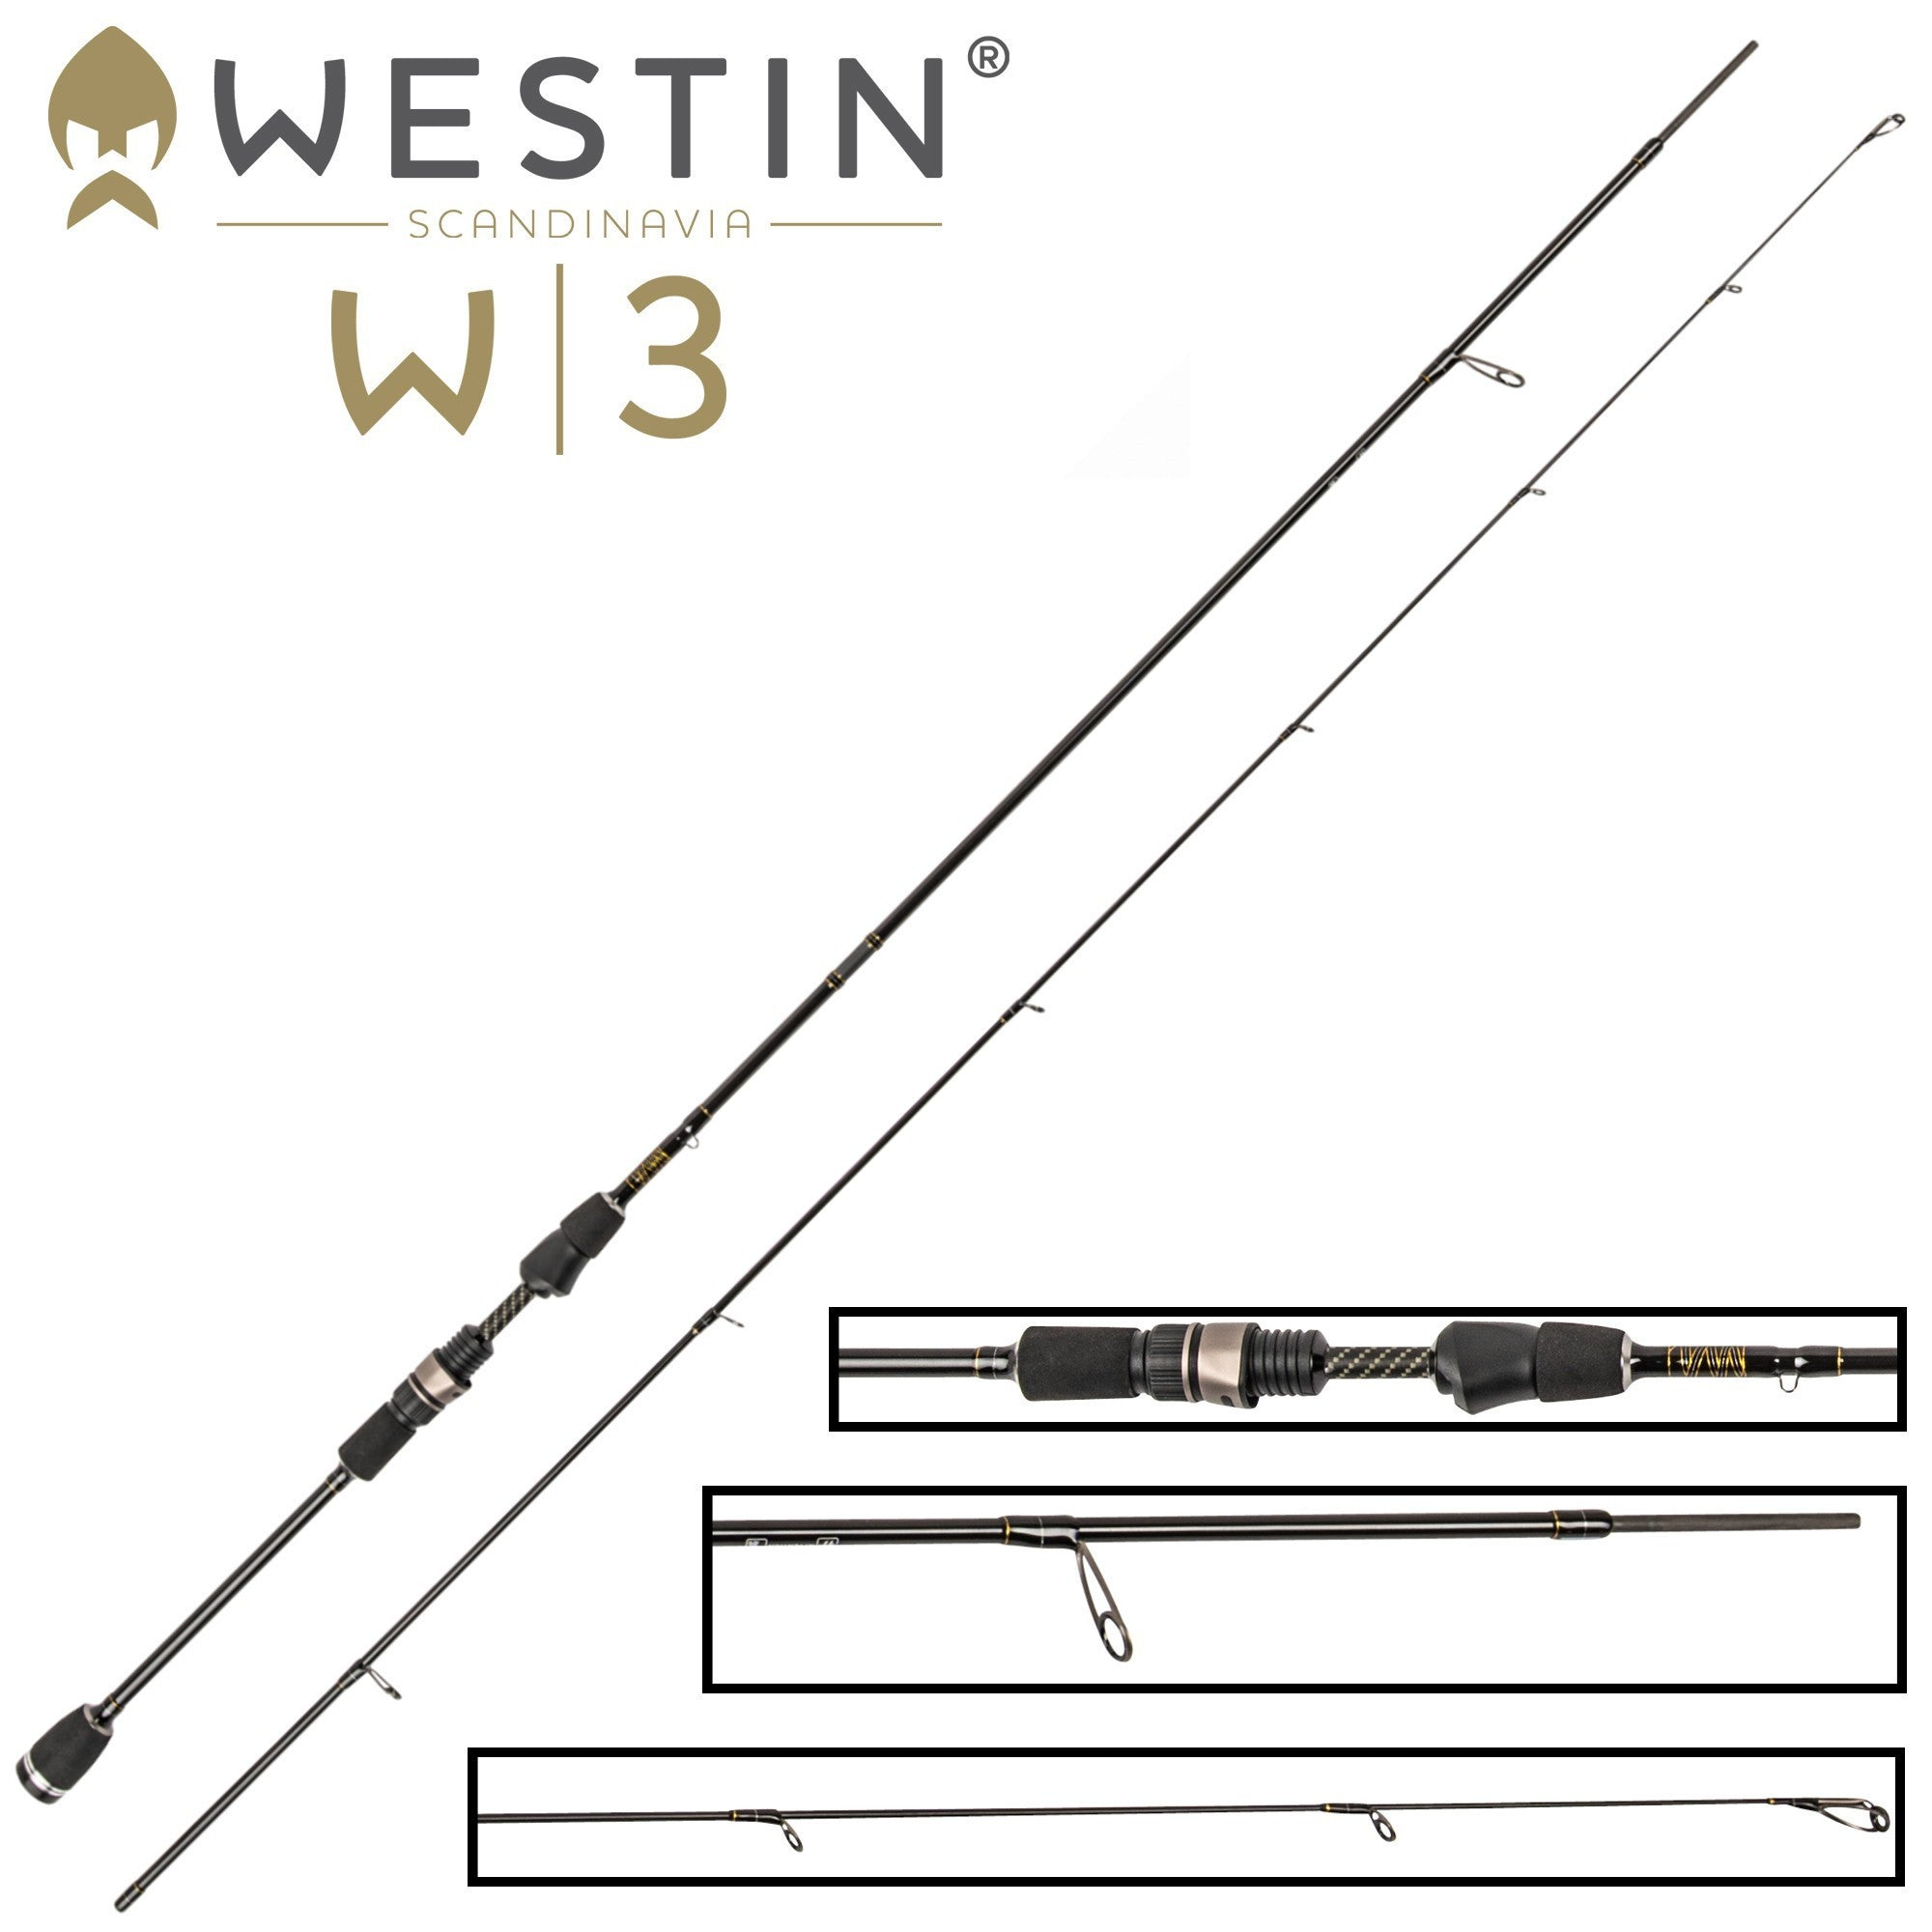 Westin W3 Street Stick - The Lure Box